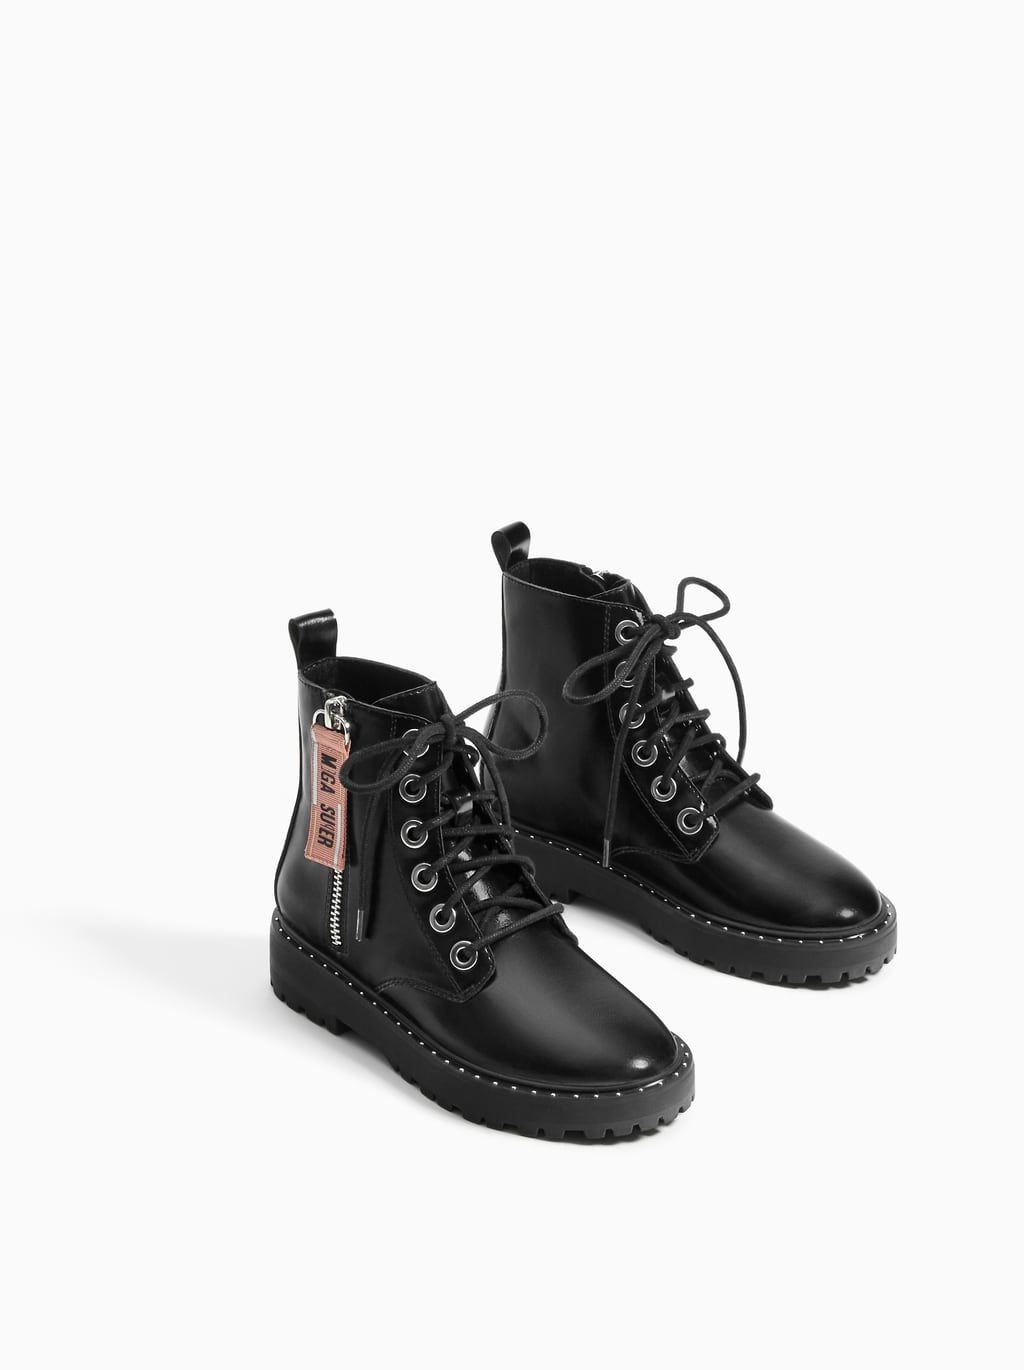 cad5591e4d7 Image 2 of LACE-UP ANKLE BOOTS WITH MINI STUDS from Zara | kid's in ...